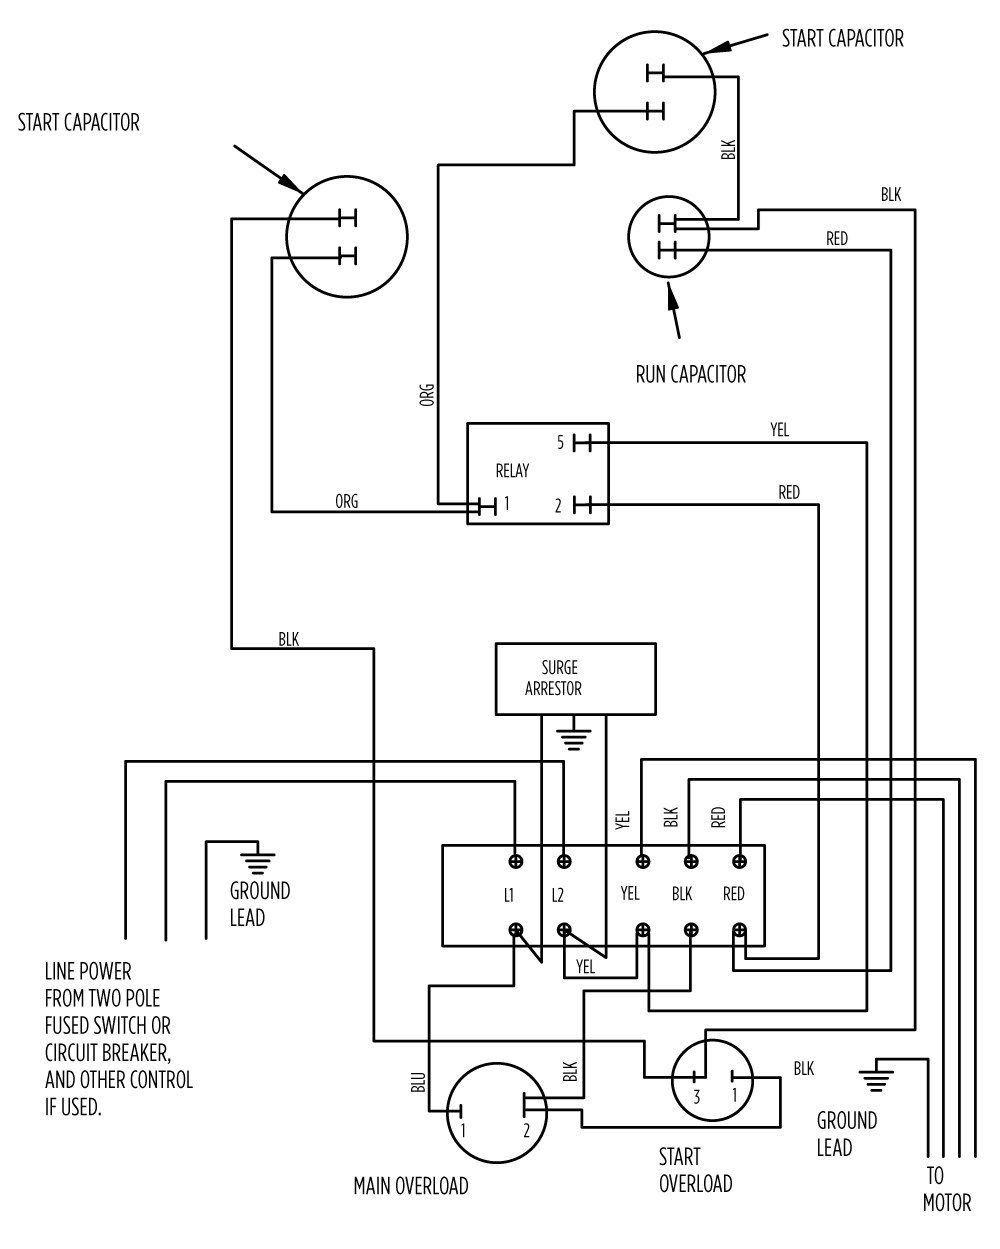 Franklin Electric 1081 Pool Motor Wiring Diagram - Wiring Diagram | 831